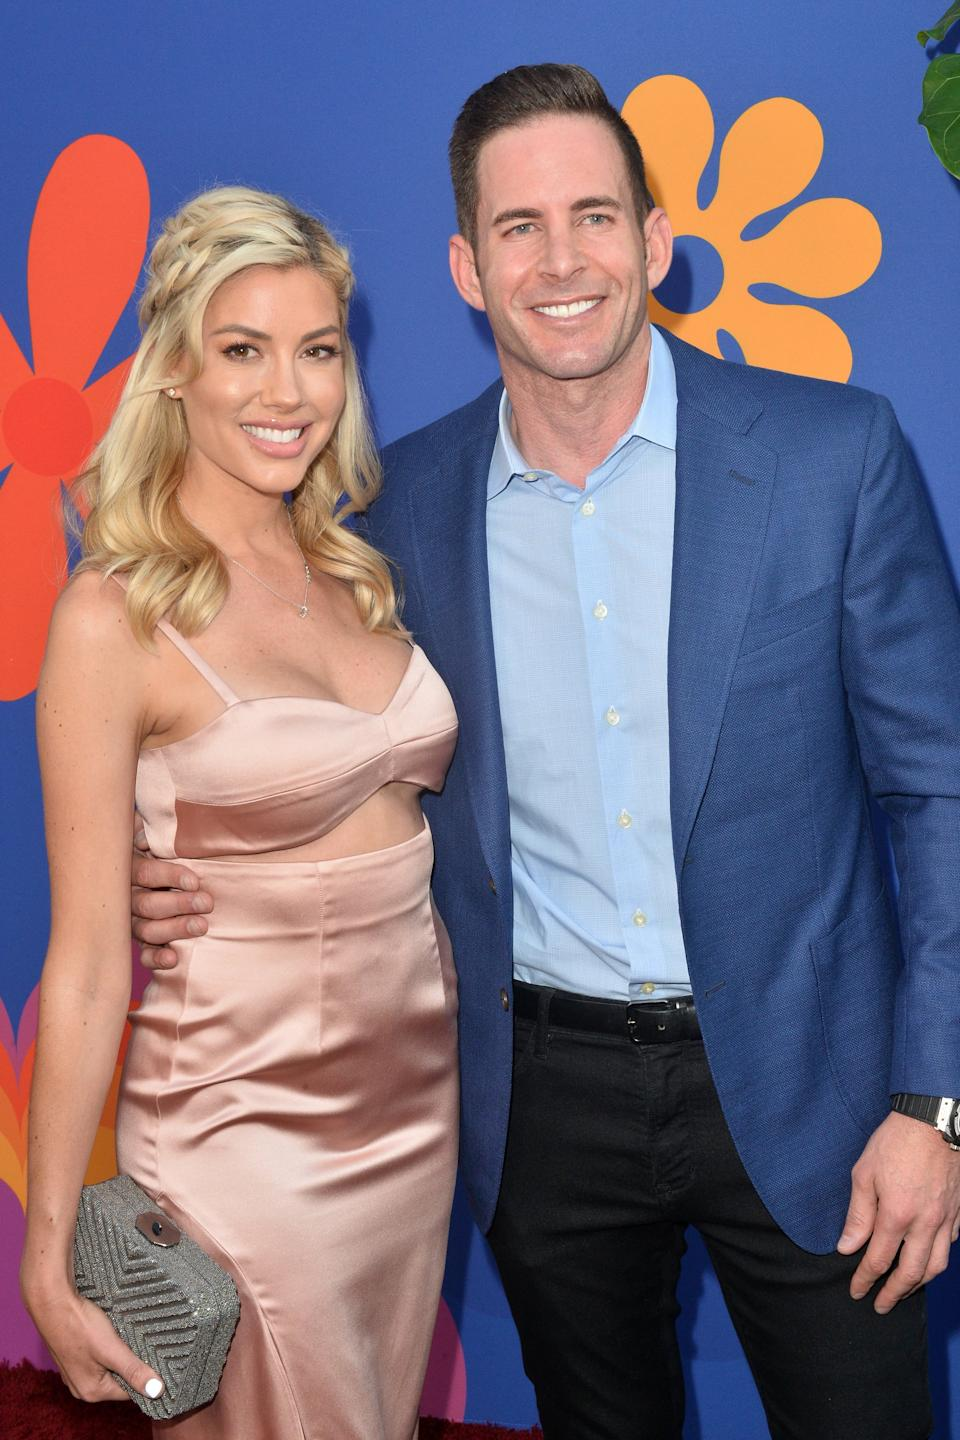 NORTH HOLLYWOOD, CALIFORNIA - SEPTEMBER 05: Heather Rae Young and Tarek El Moussa attend the Premiere of HGTV's 'A Very Brady Renovation' at The Garland Hotel on September 05, 2019 in North Hollywood, California. (Photo by Jerod Harris/FilmMagic)